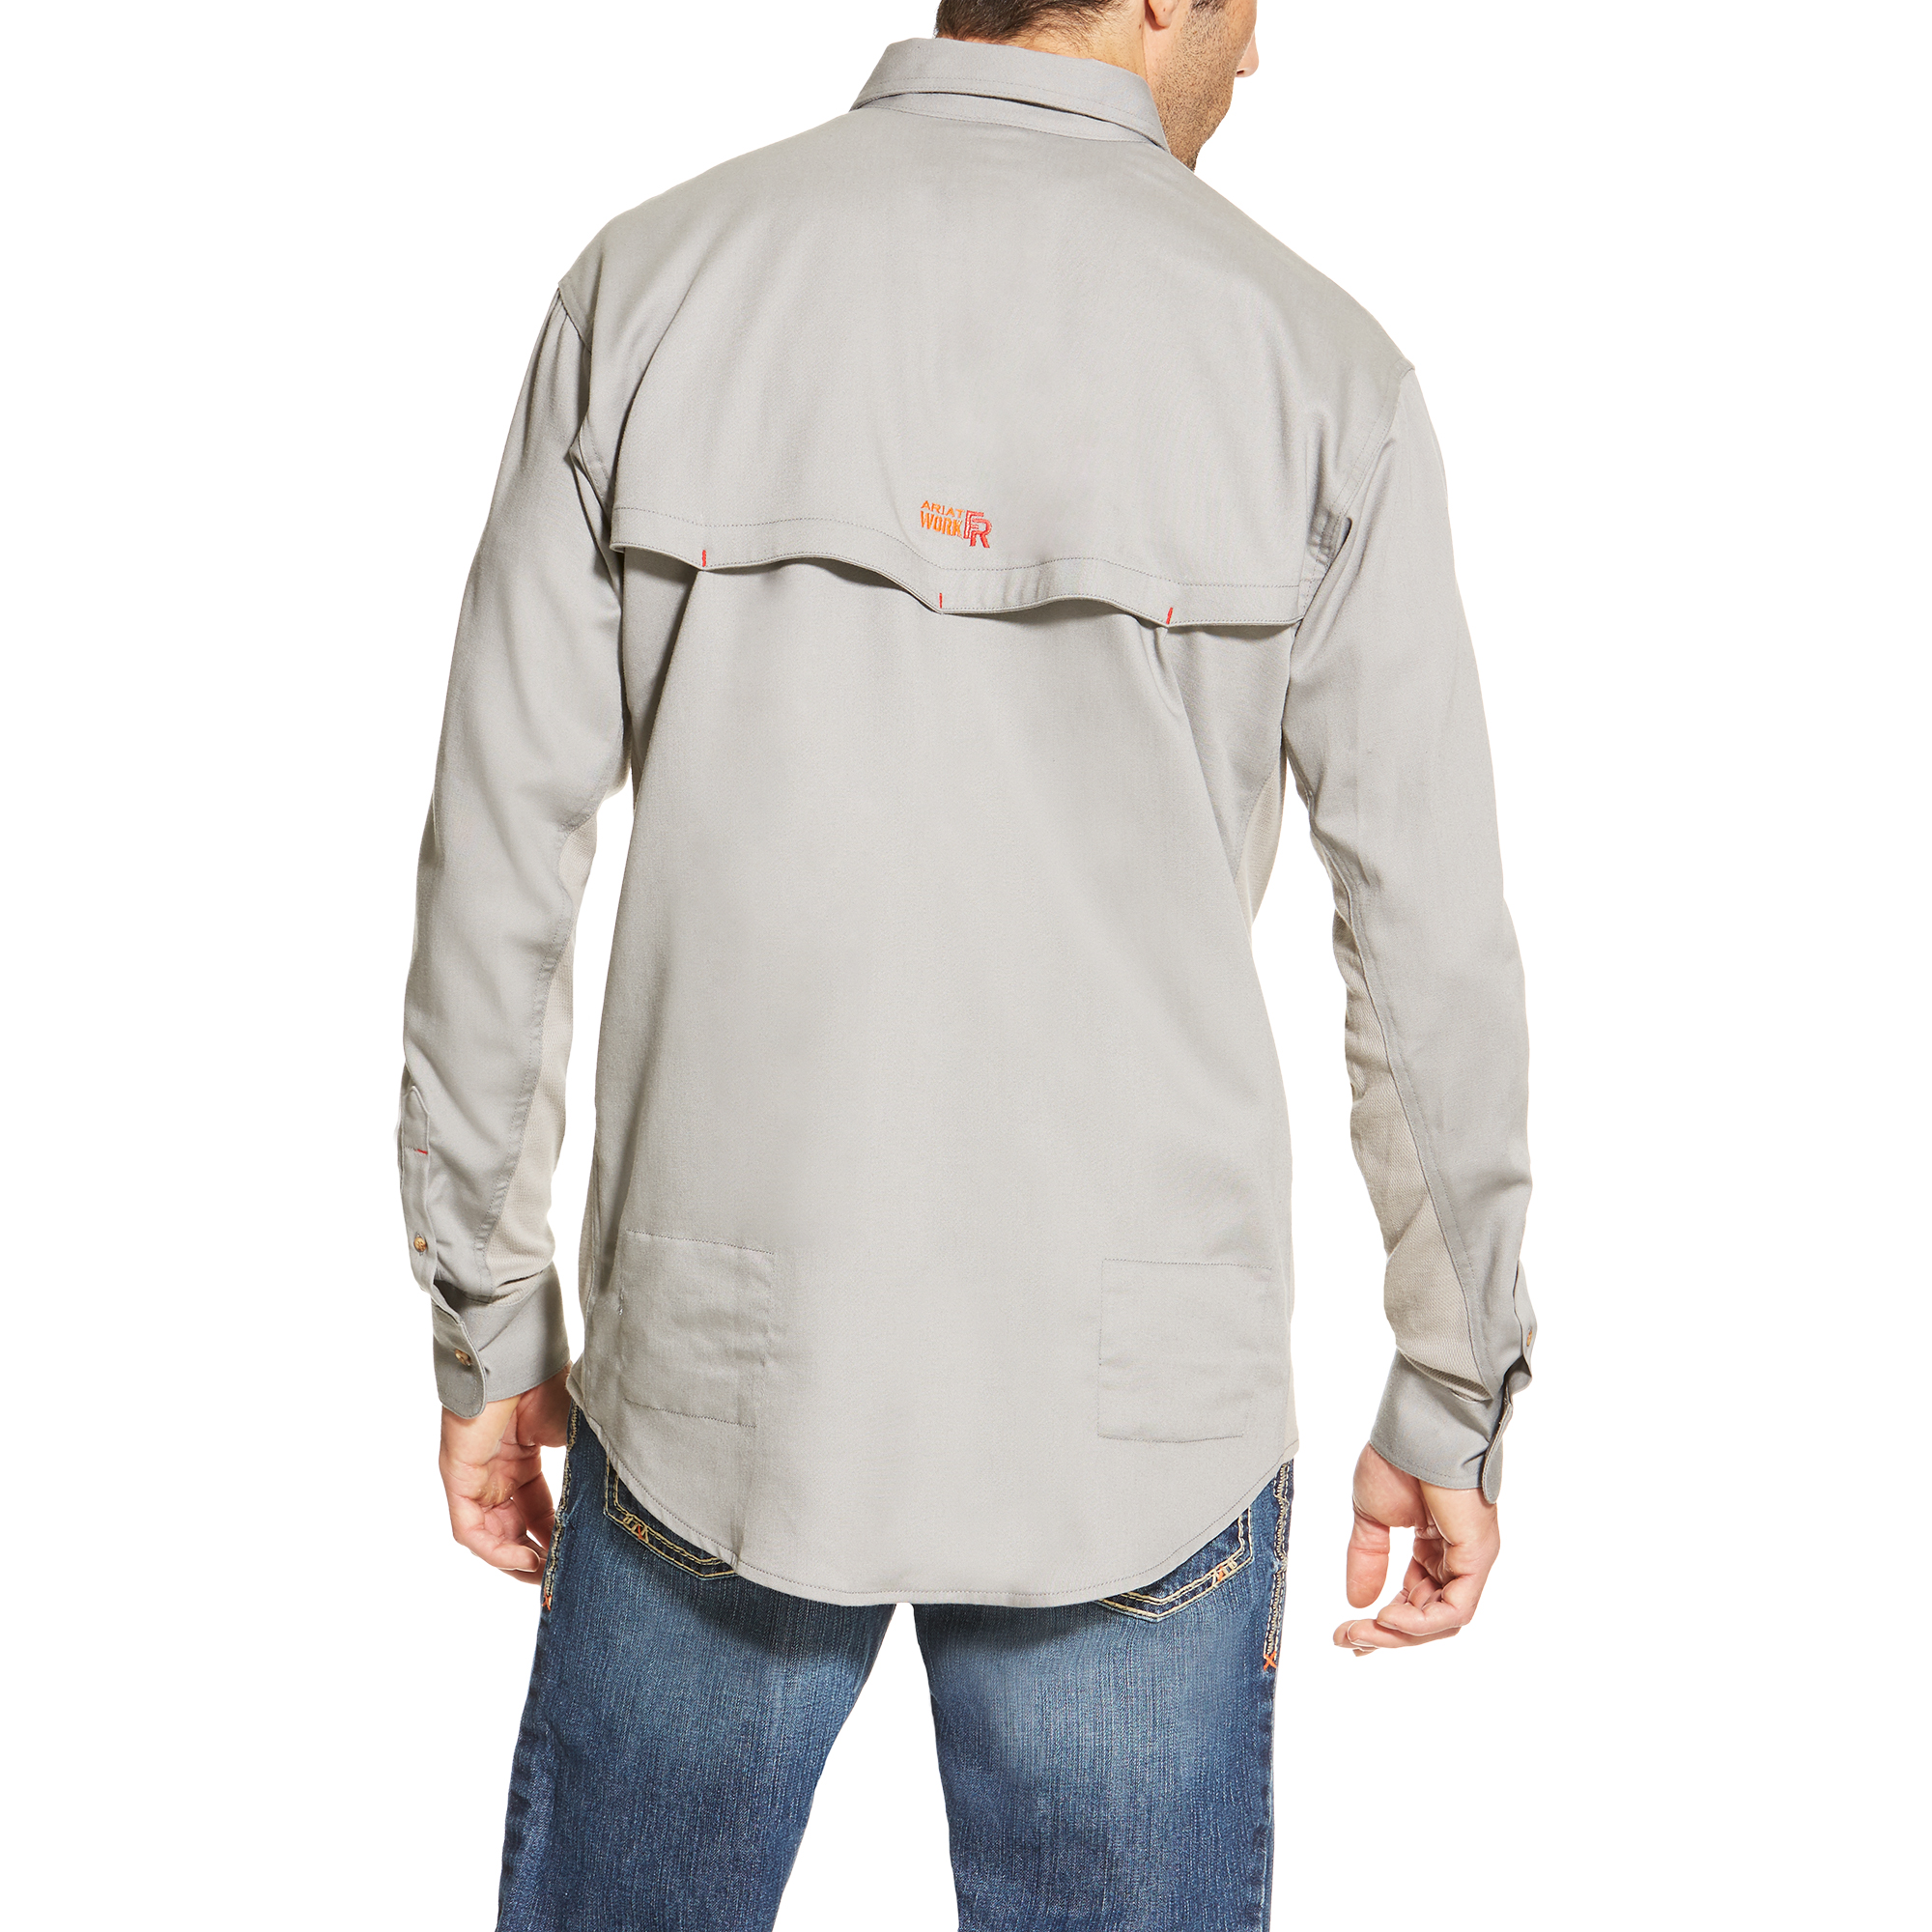 64d80aa7b4c9 FR Solid Vent Shirt - Mettry